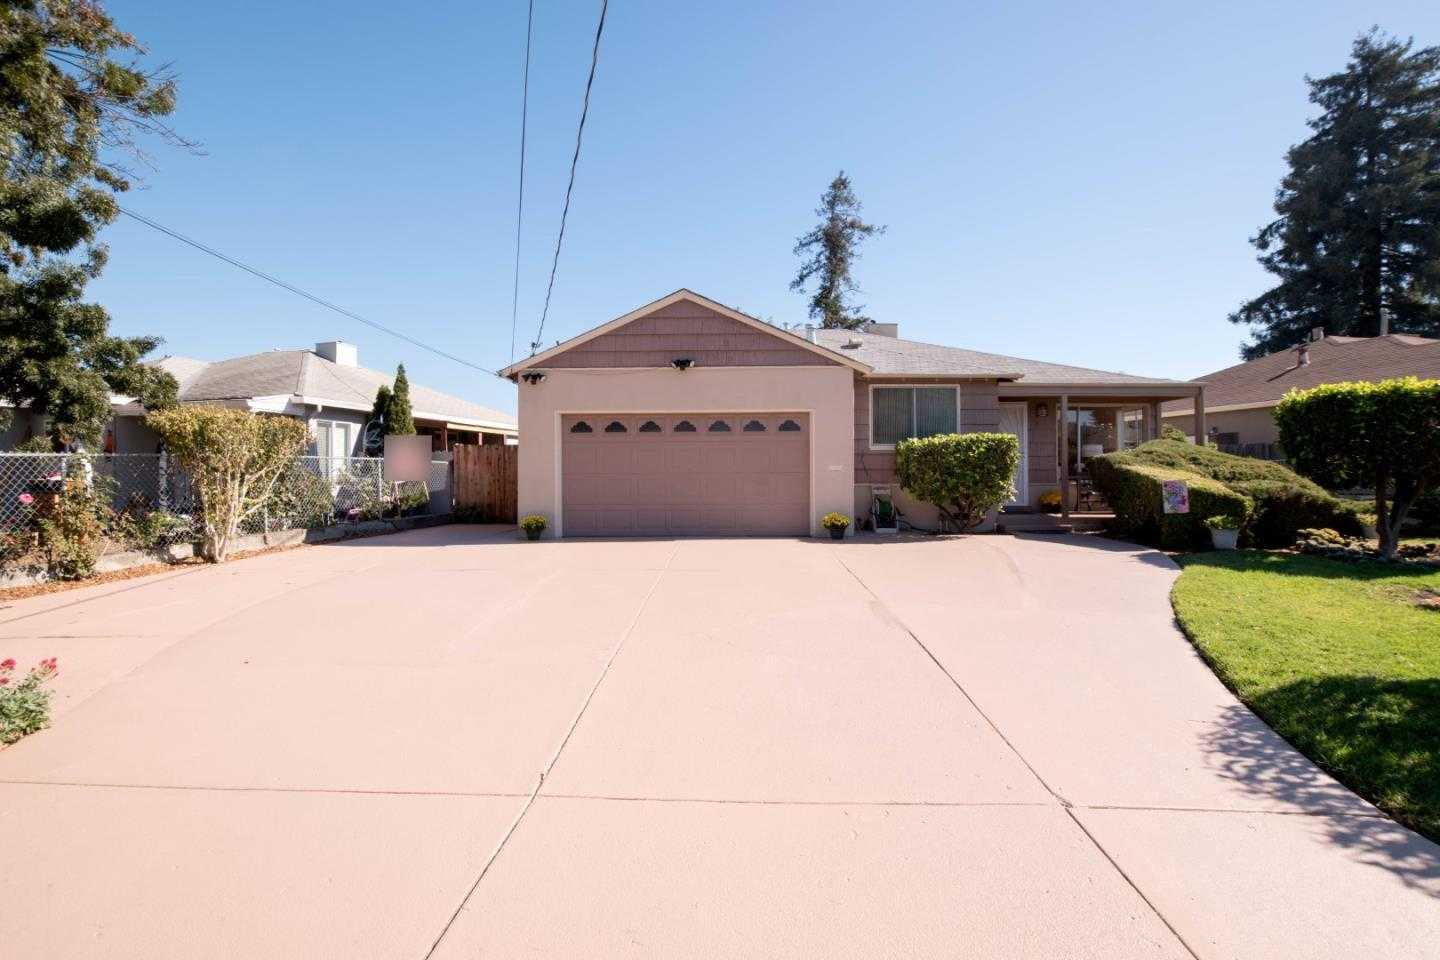 $985,000 - 4Br/2Ba -  for Sale in East Palo Alto